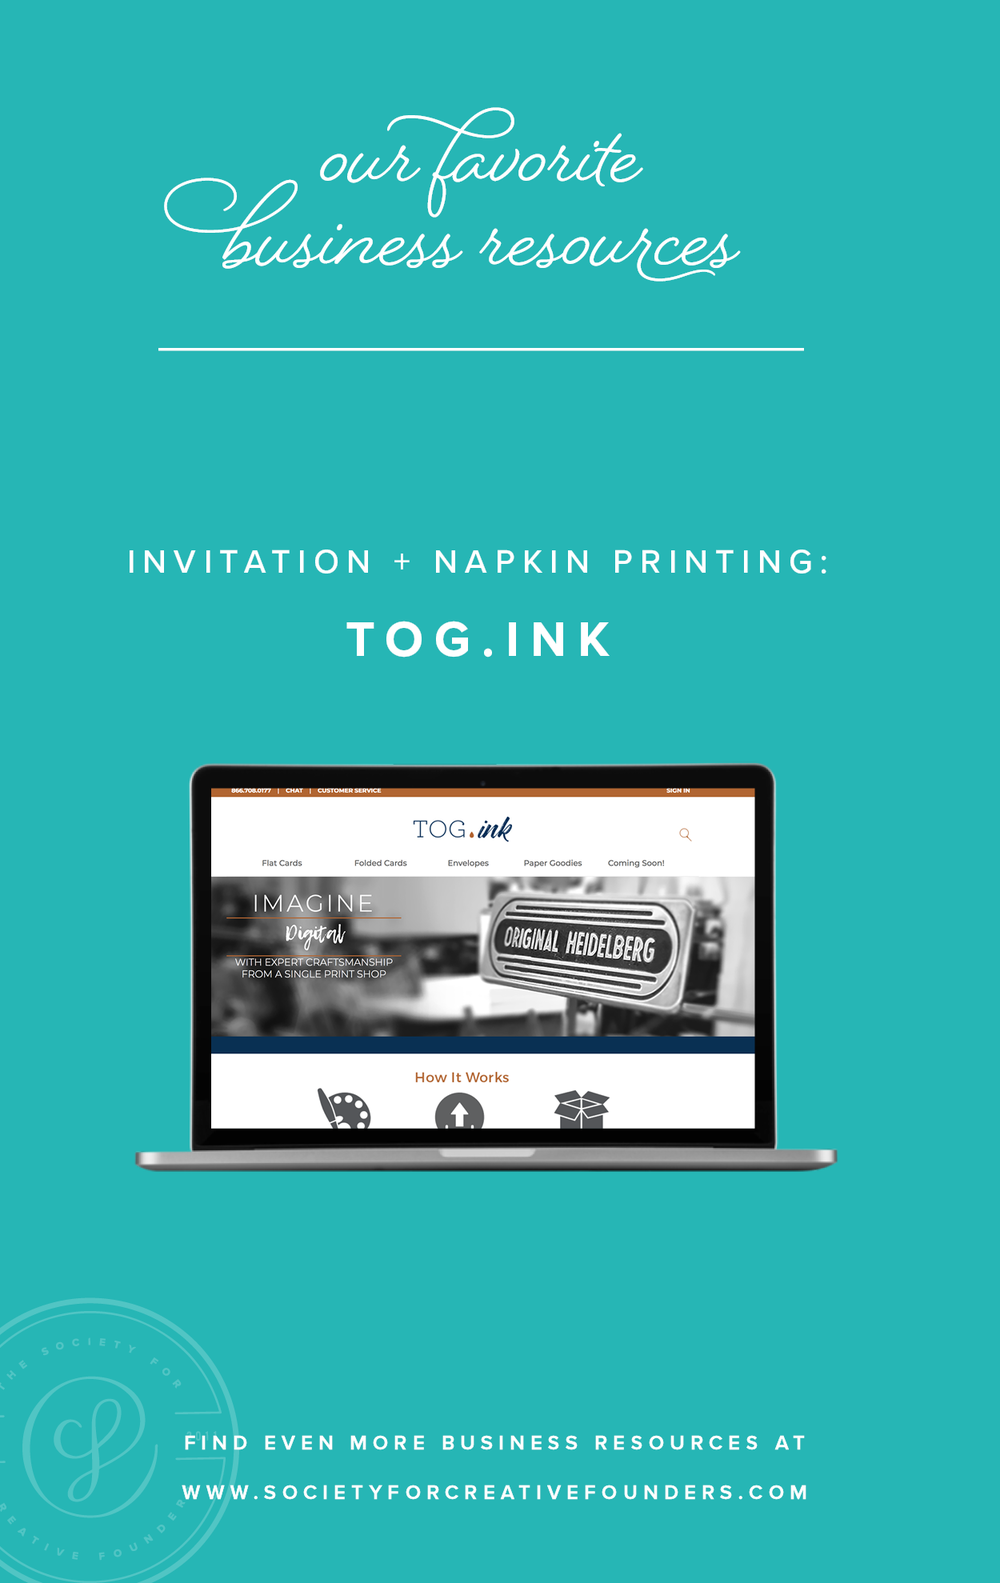 Tog.Ink - Favorite Business Resources from Society for Creative Founders